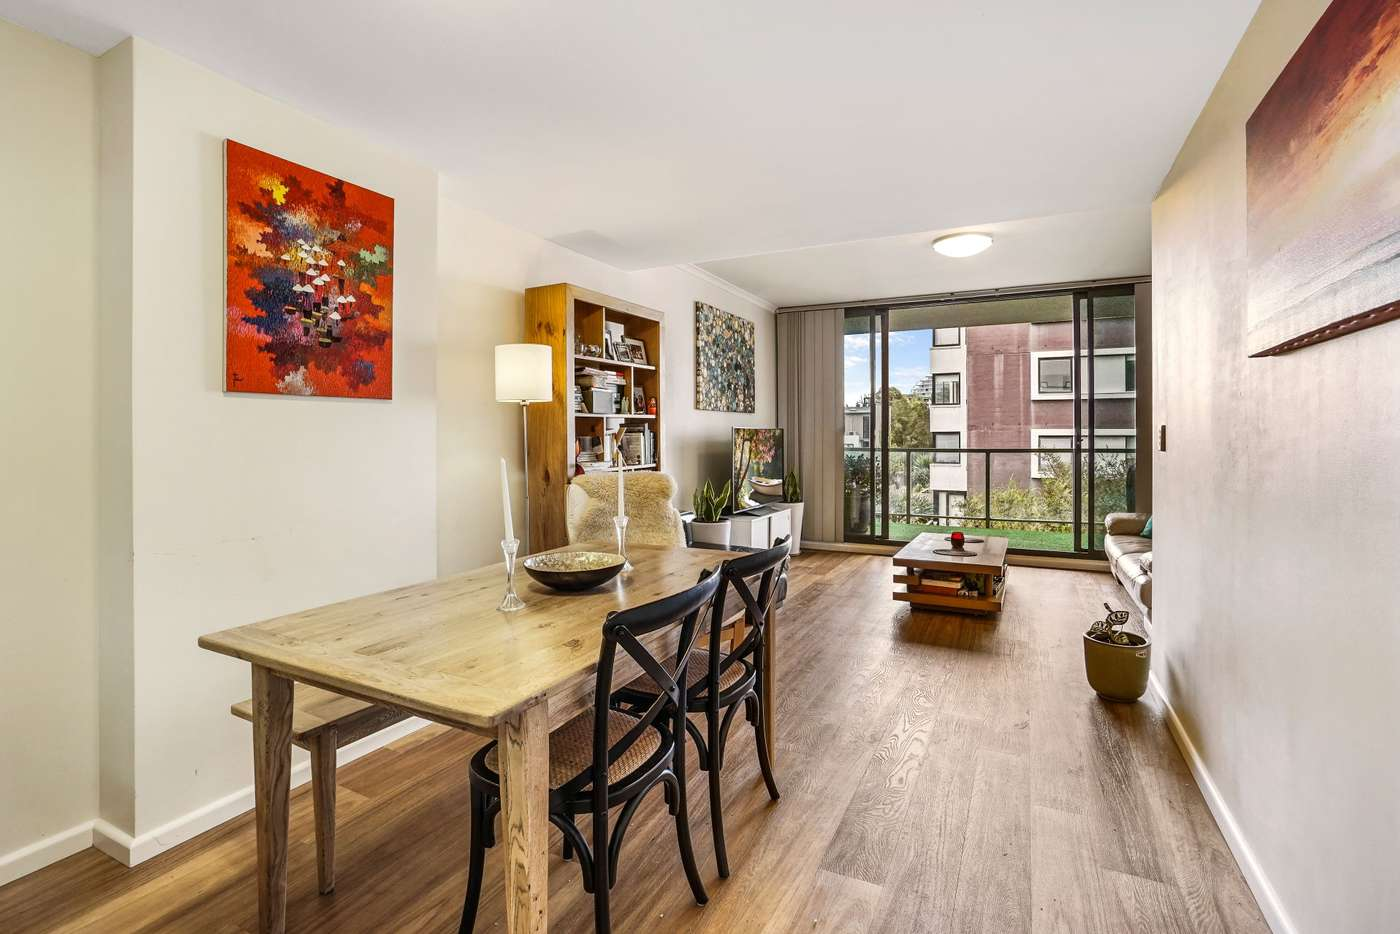 Main view of Homely apartment listing, 8/8 Grandstand Pde (Access via 28 Gadigal Av), Zetland NSW 2017